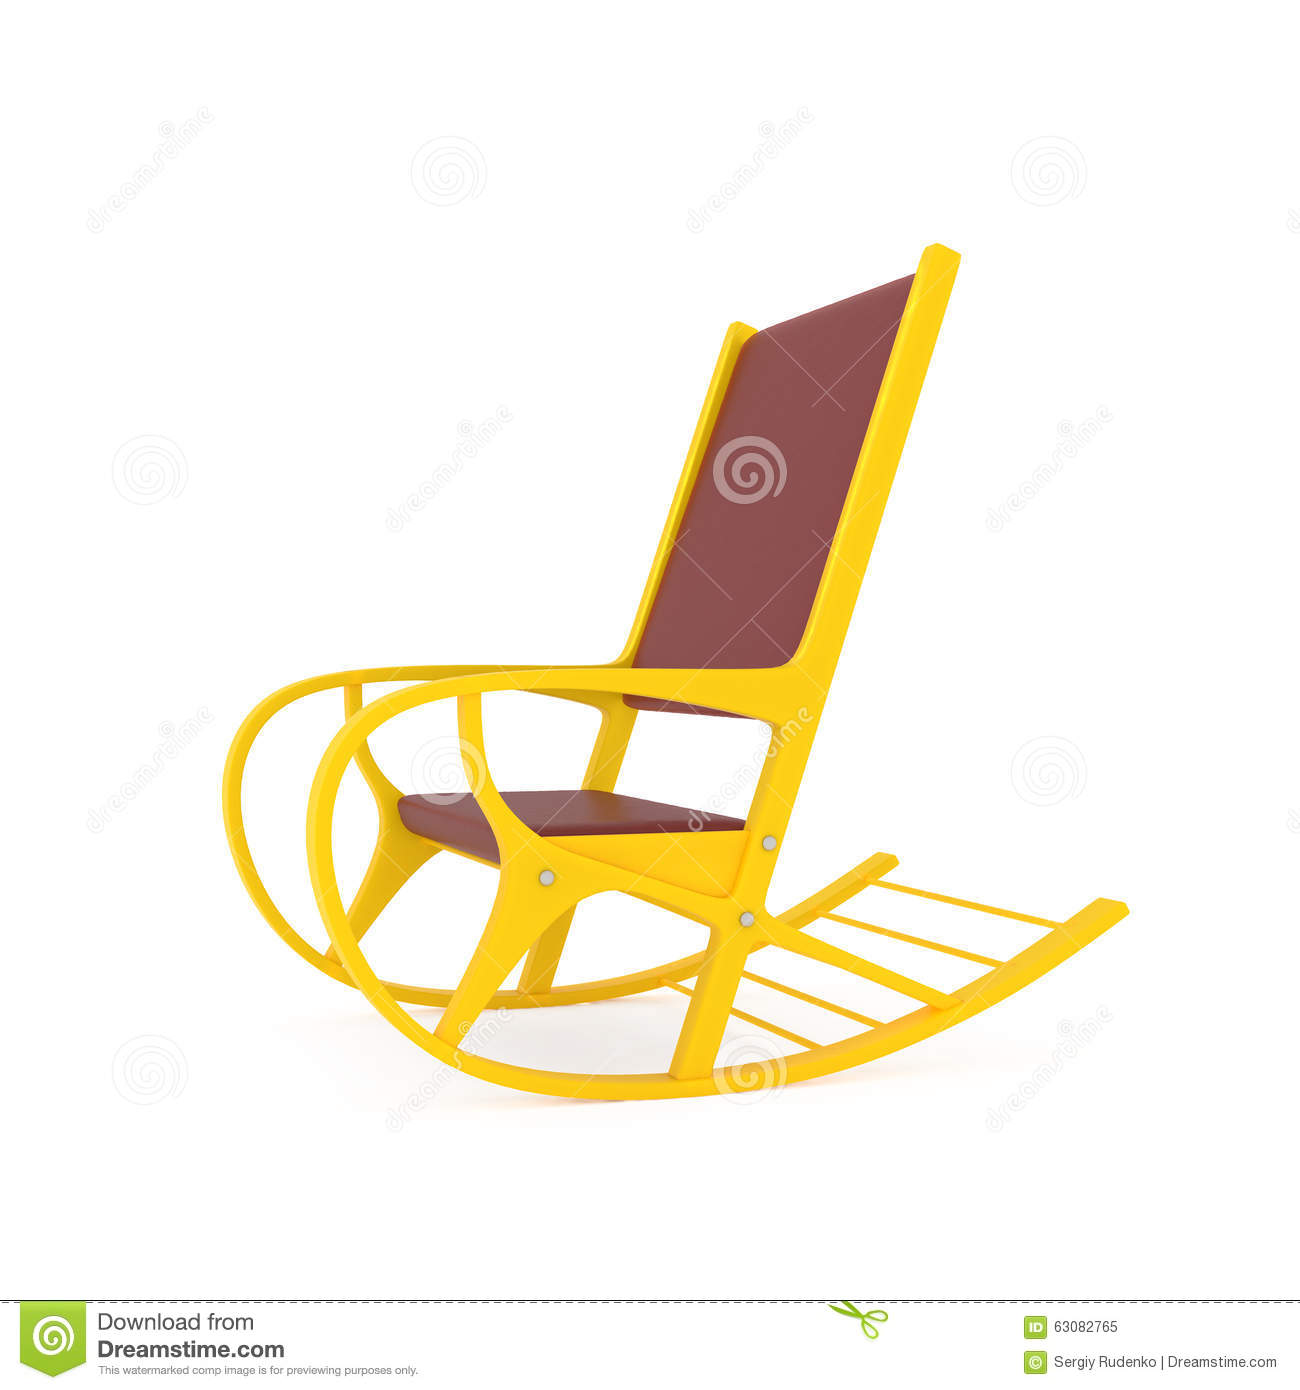 Download Chaise De Basculage Orange Sur Le Blanc Illustration Stock - Illustration du bois, façonné: 63082765